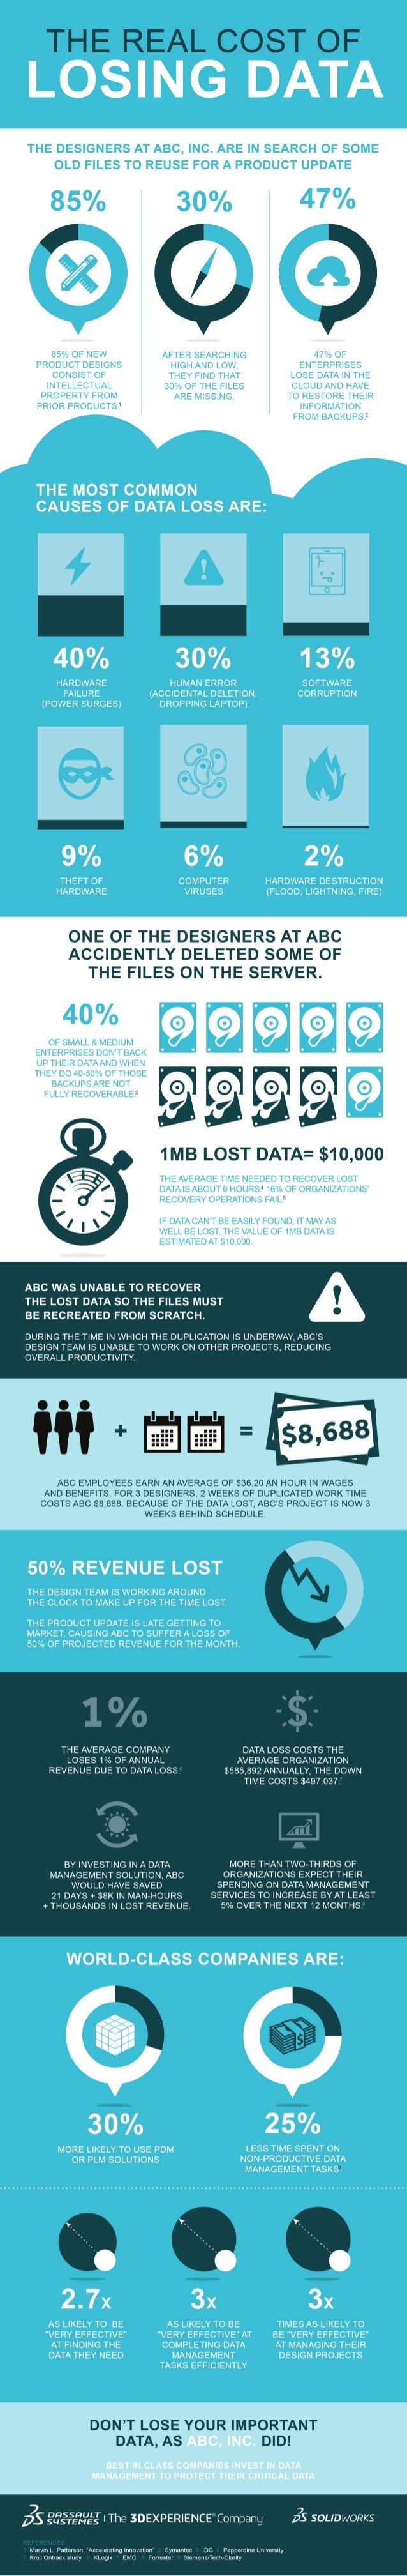 The Real Cost of Losing Data